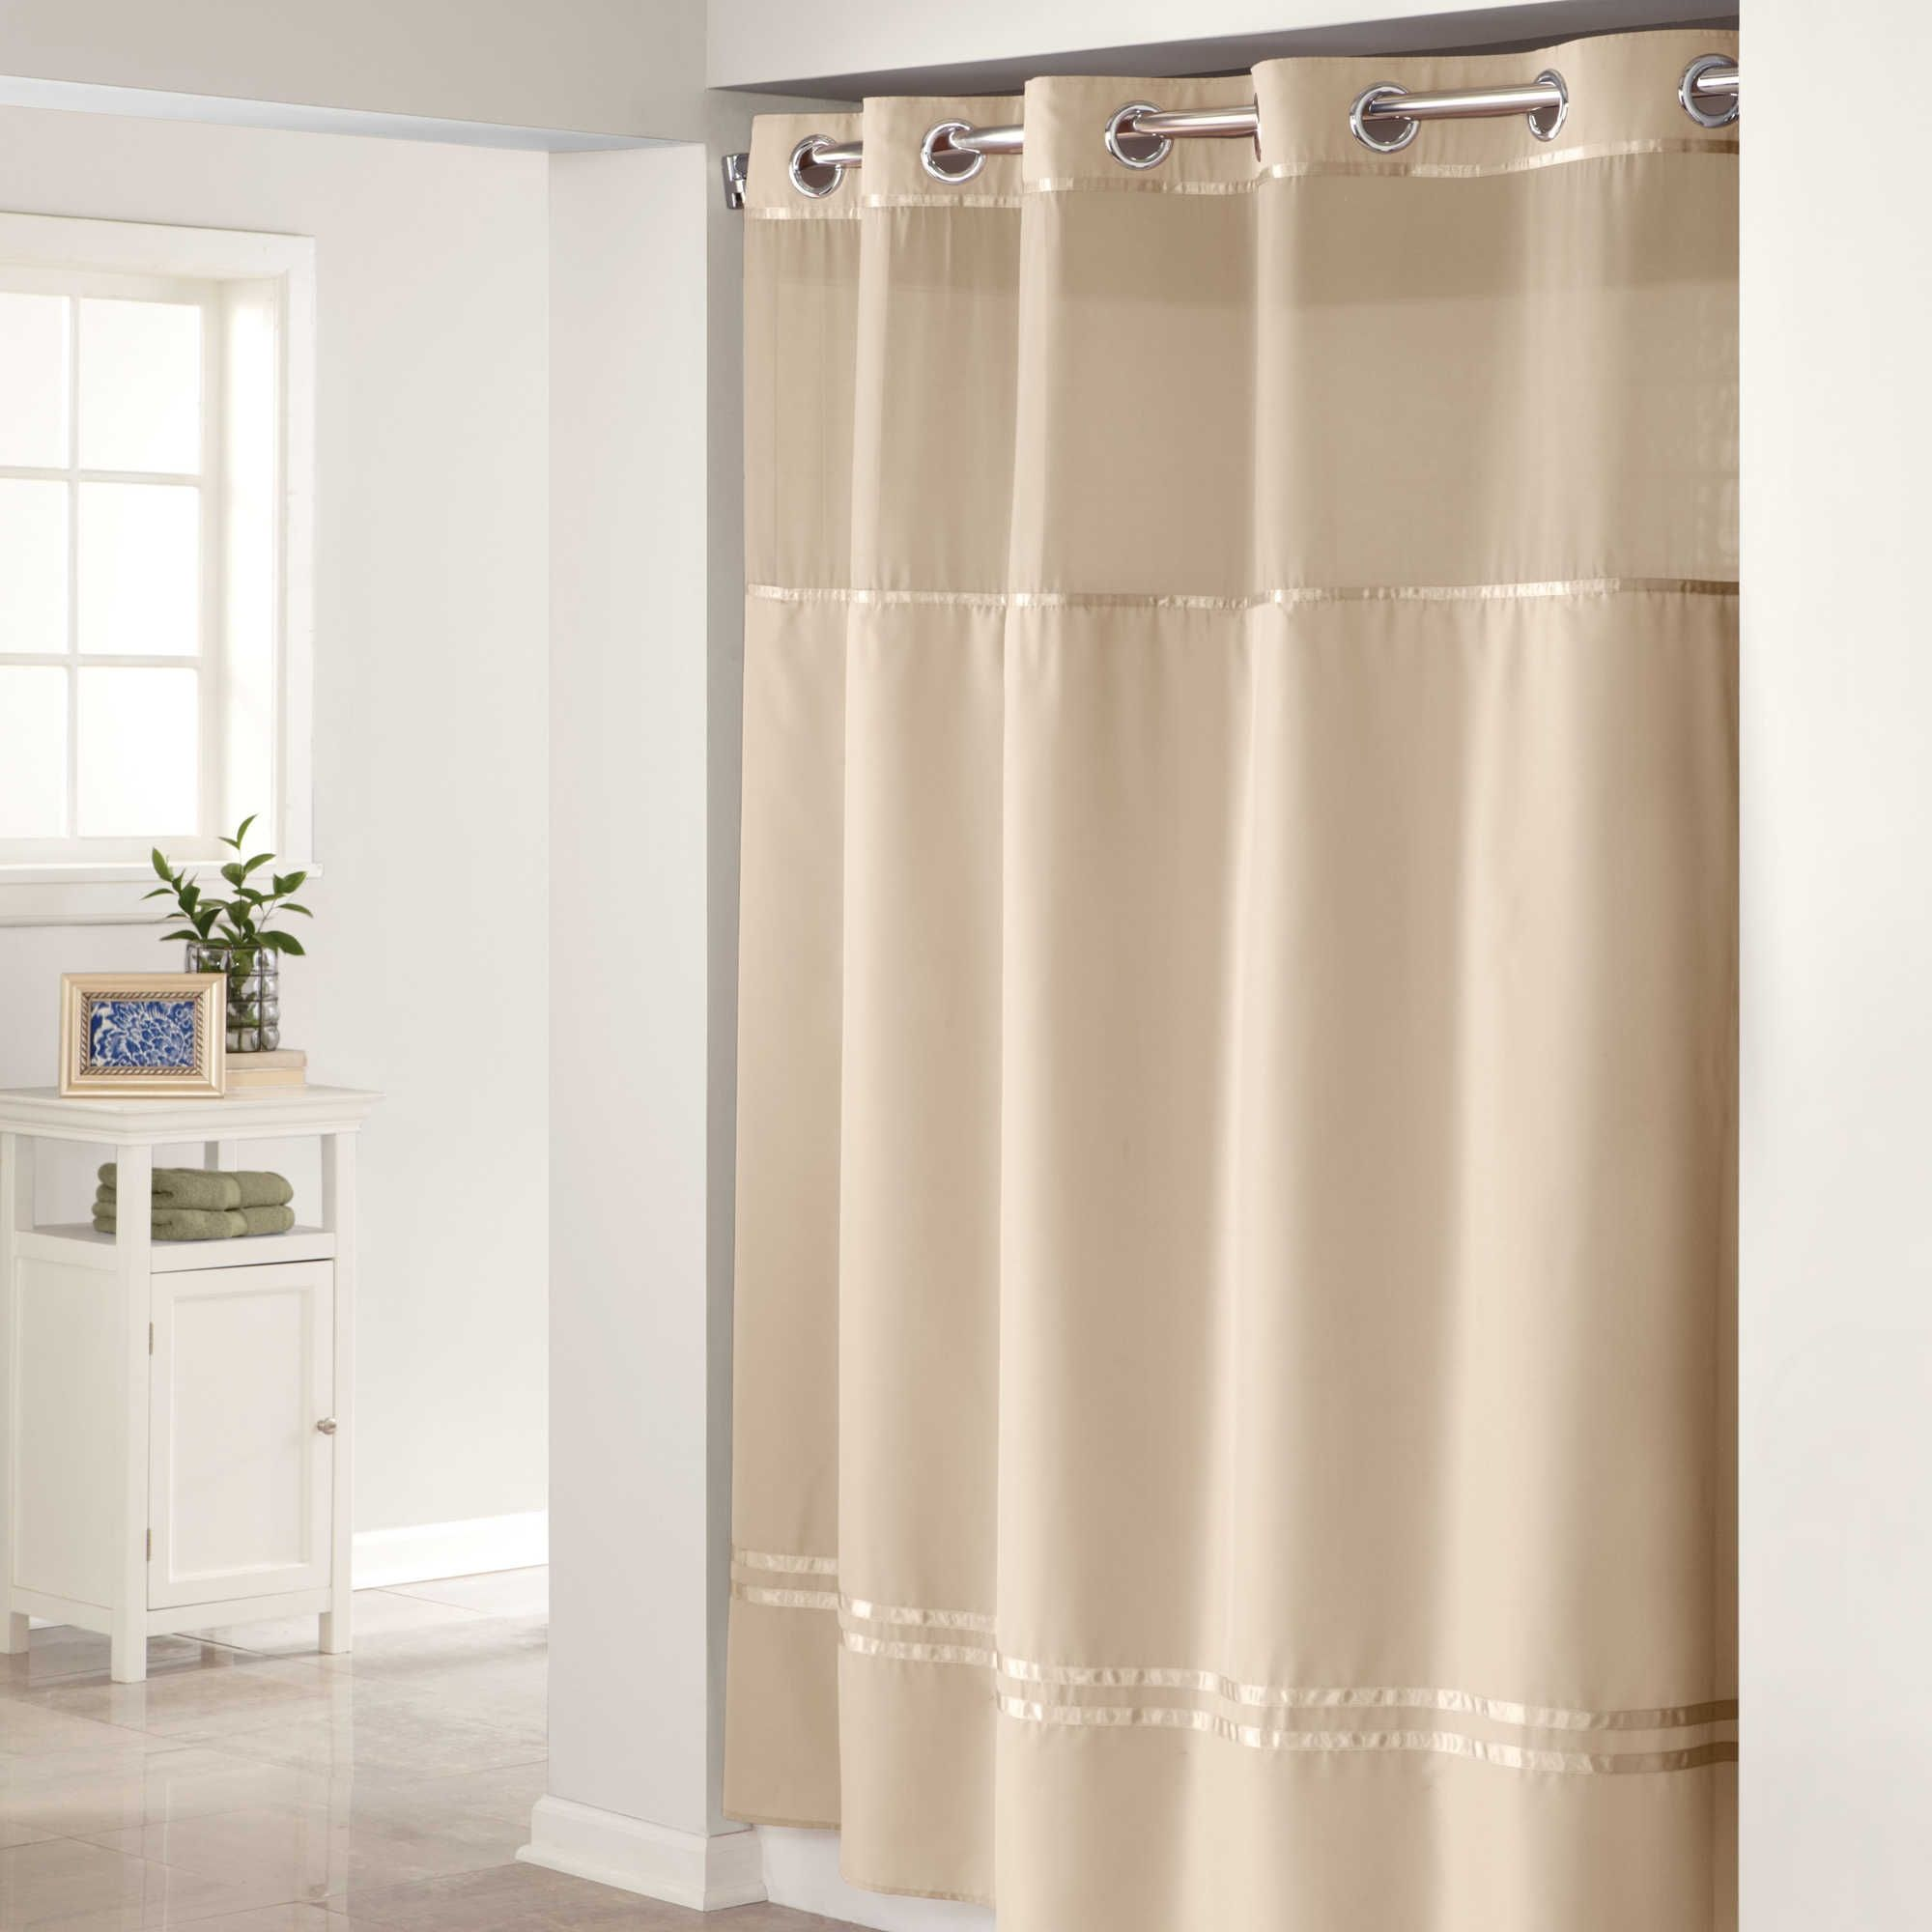 Hookless Shower Curtain Bronze Rings | Shower Curtain | Pinterest ...